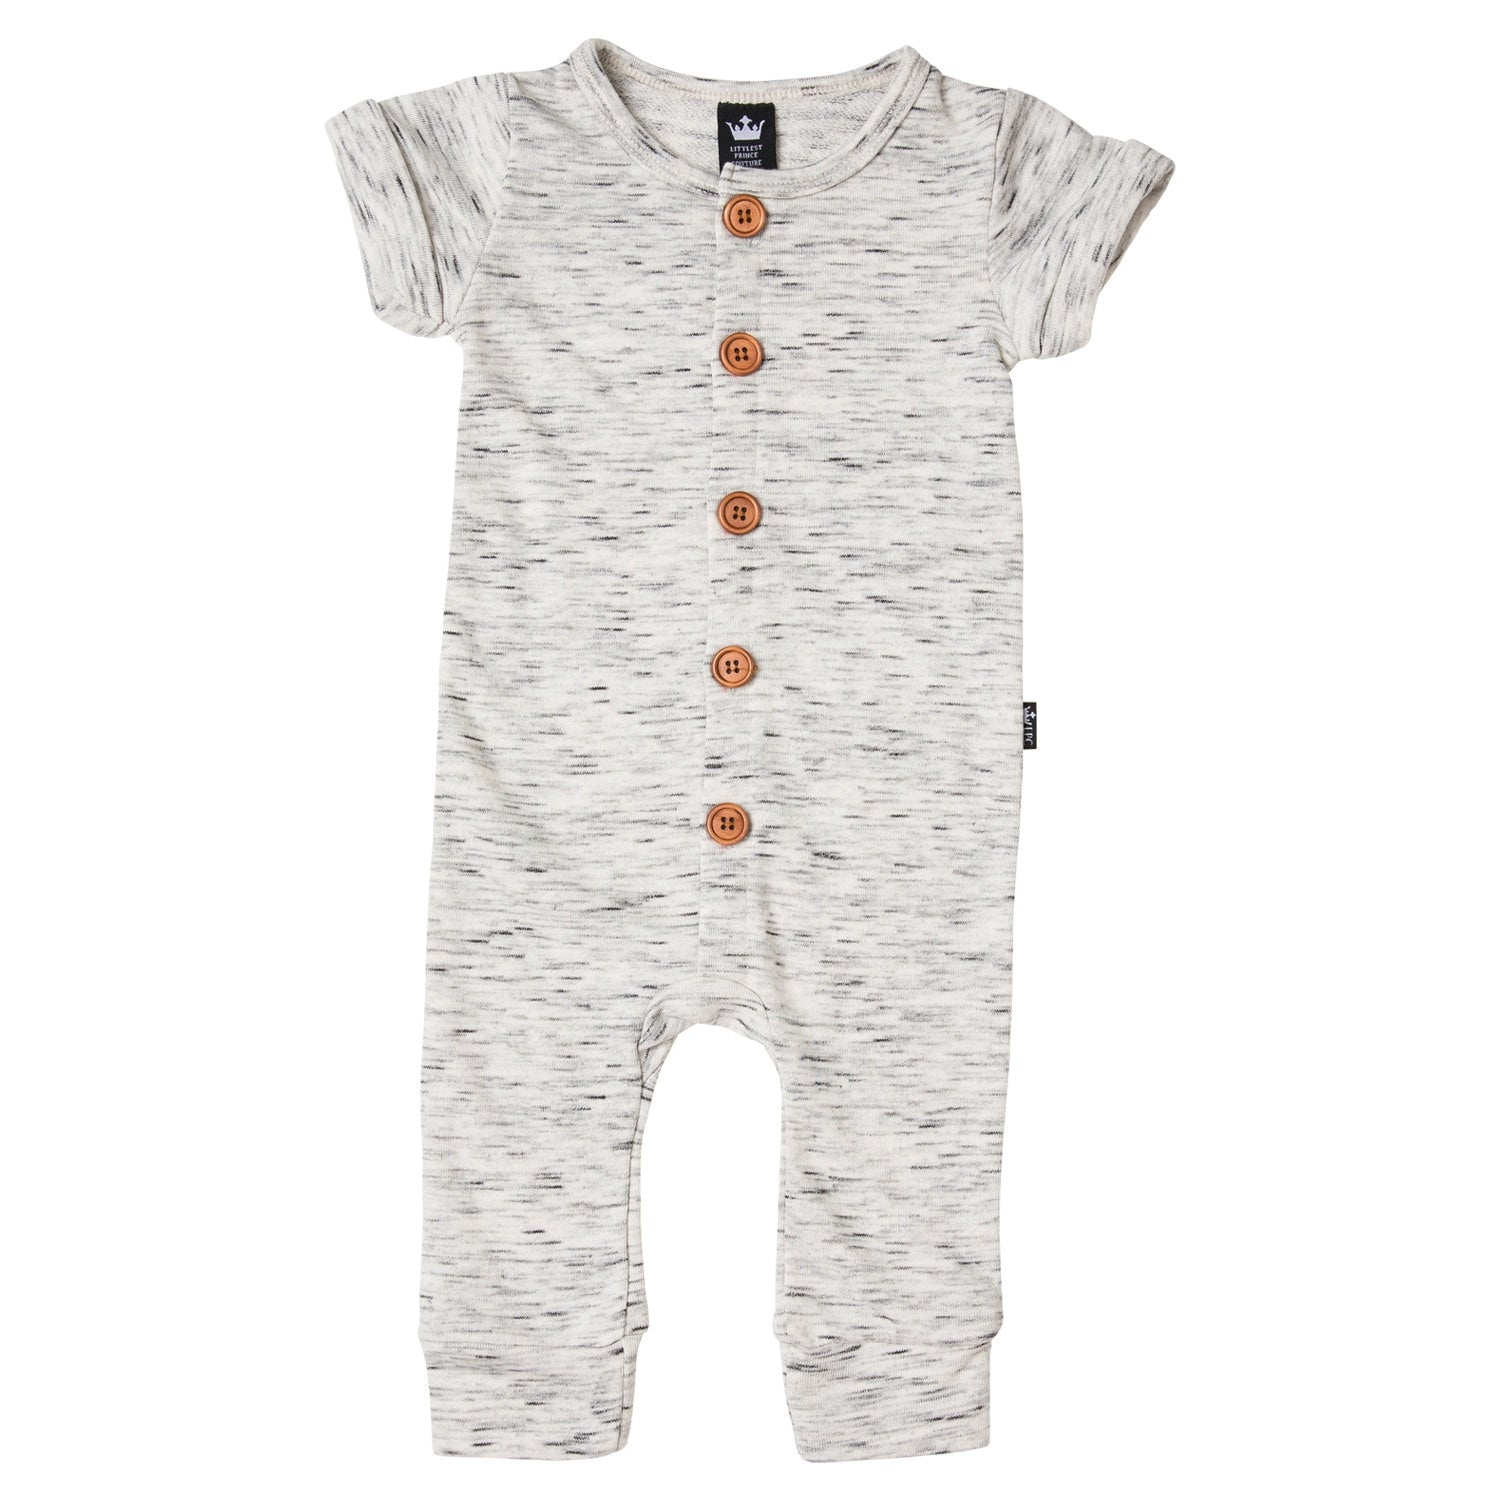 ftbur-gry-gray-french-terry-button-up-romper-front.jpg